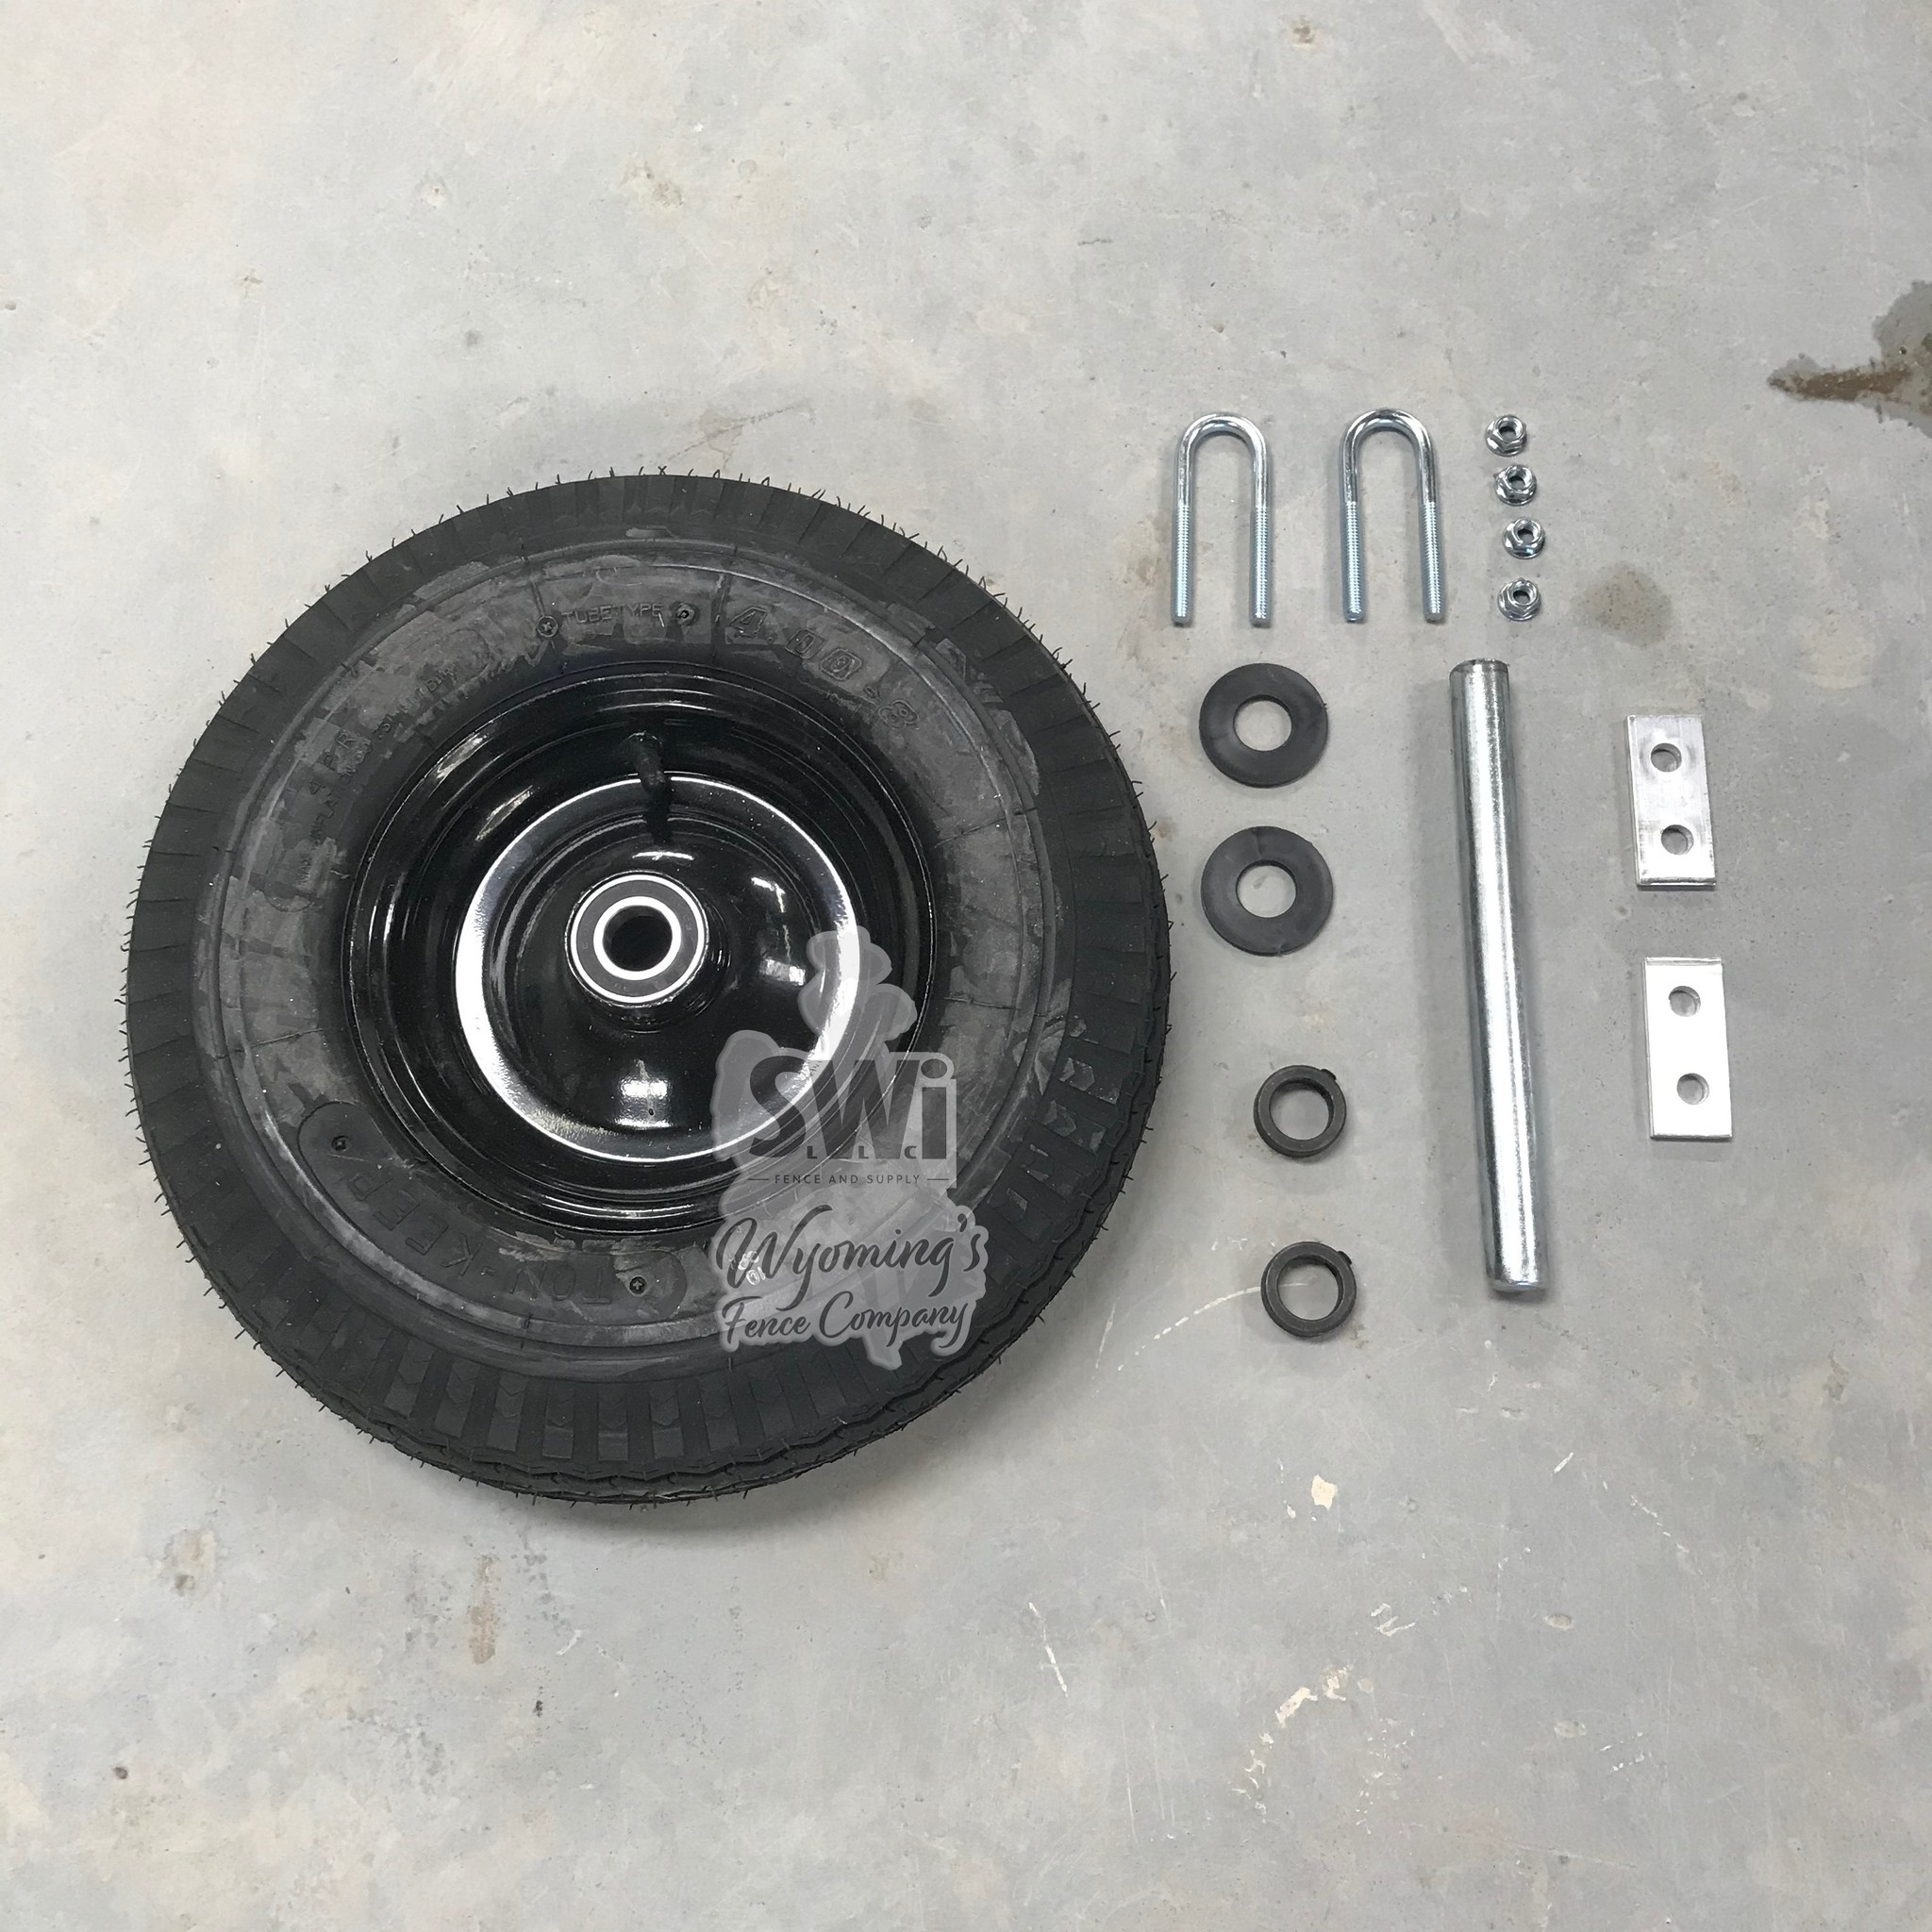 CARIOLA CARIOLA REPLACEMENT WHEEL (INCLUDES AXLE COLLARS & WASHERS)